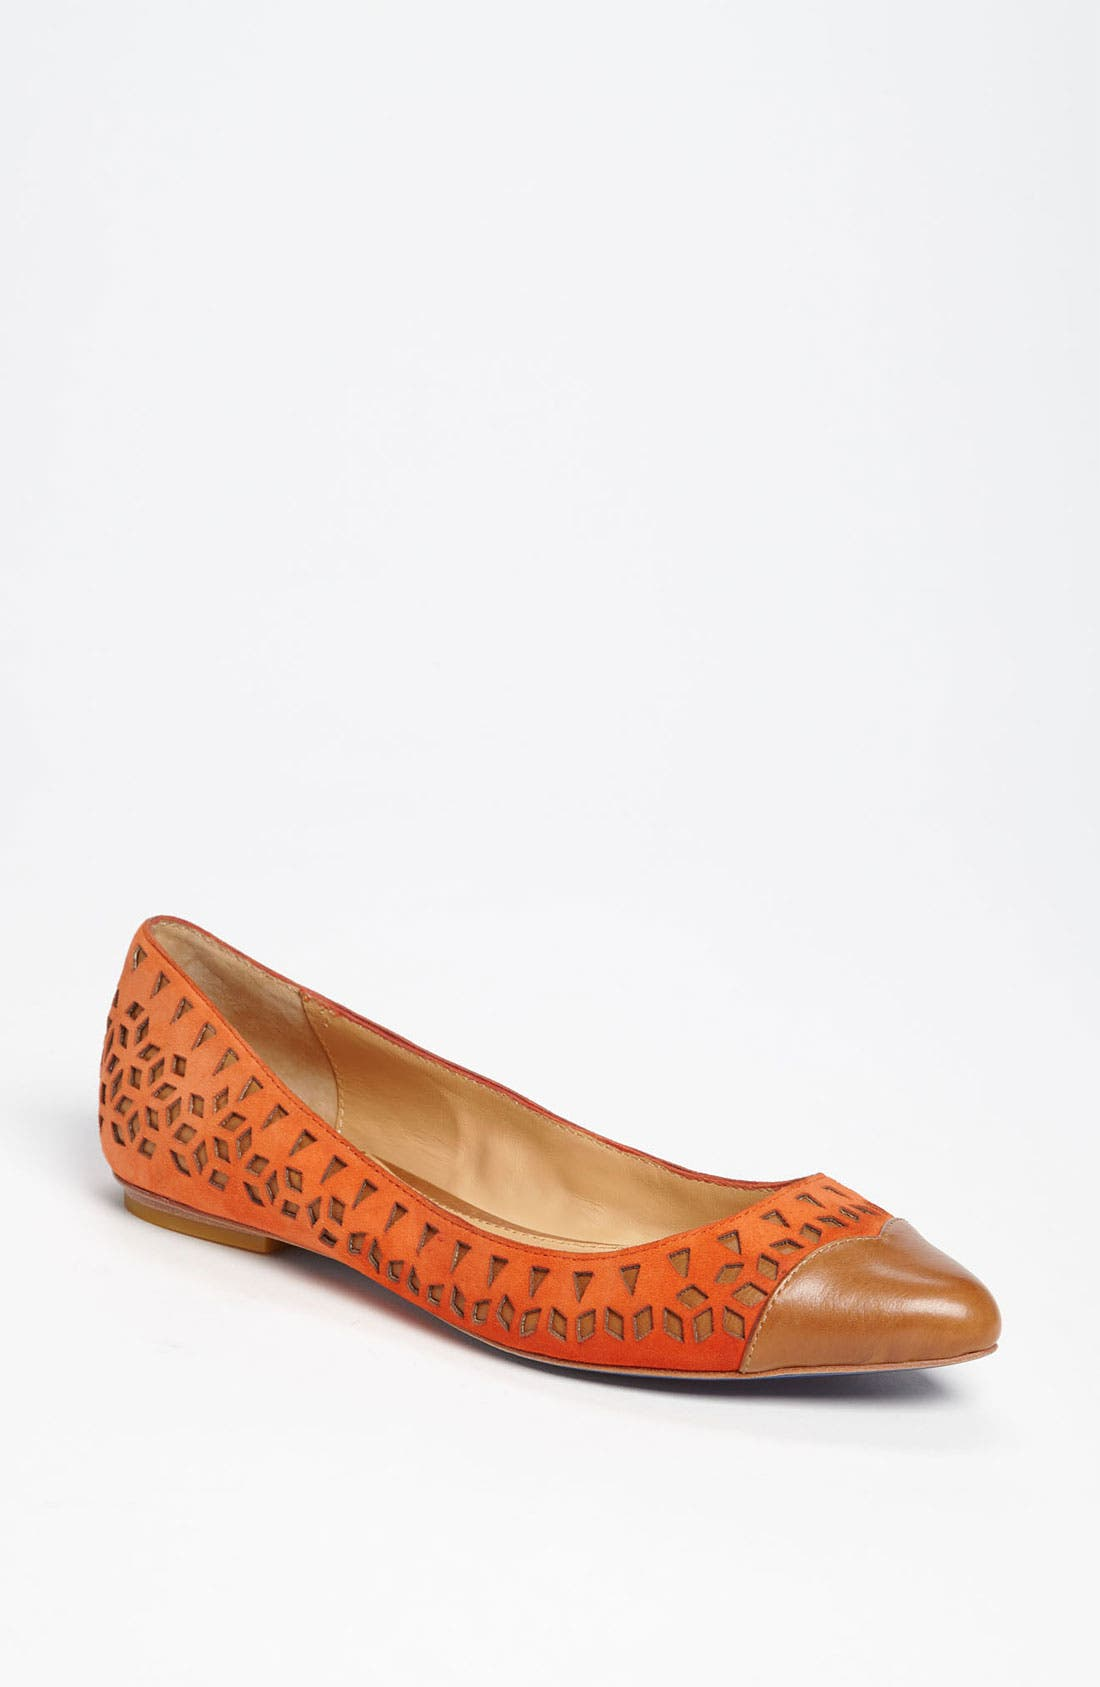 Alternate Image 1 Selected - Rebecca Minkoff 'Irene' Flat